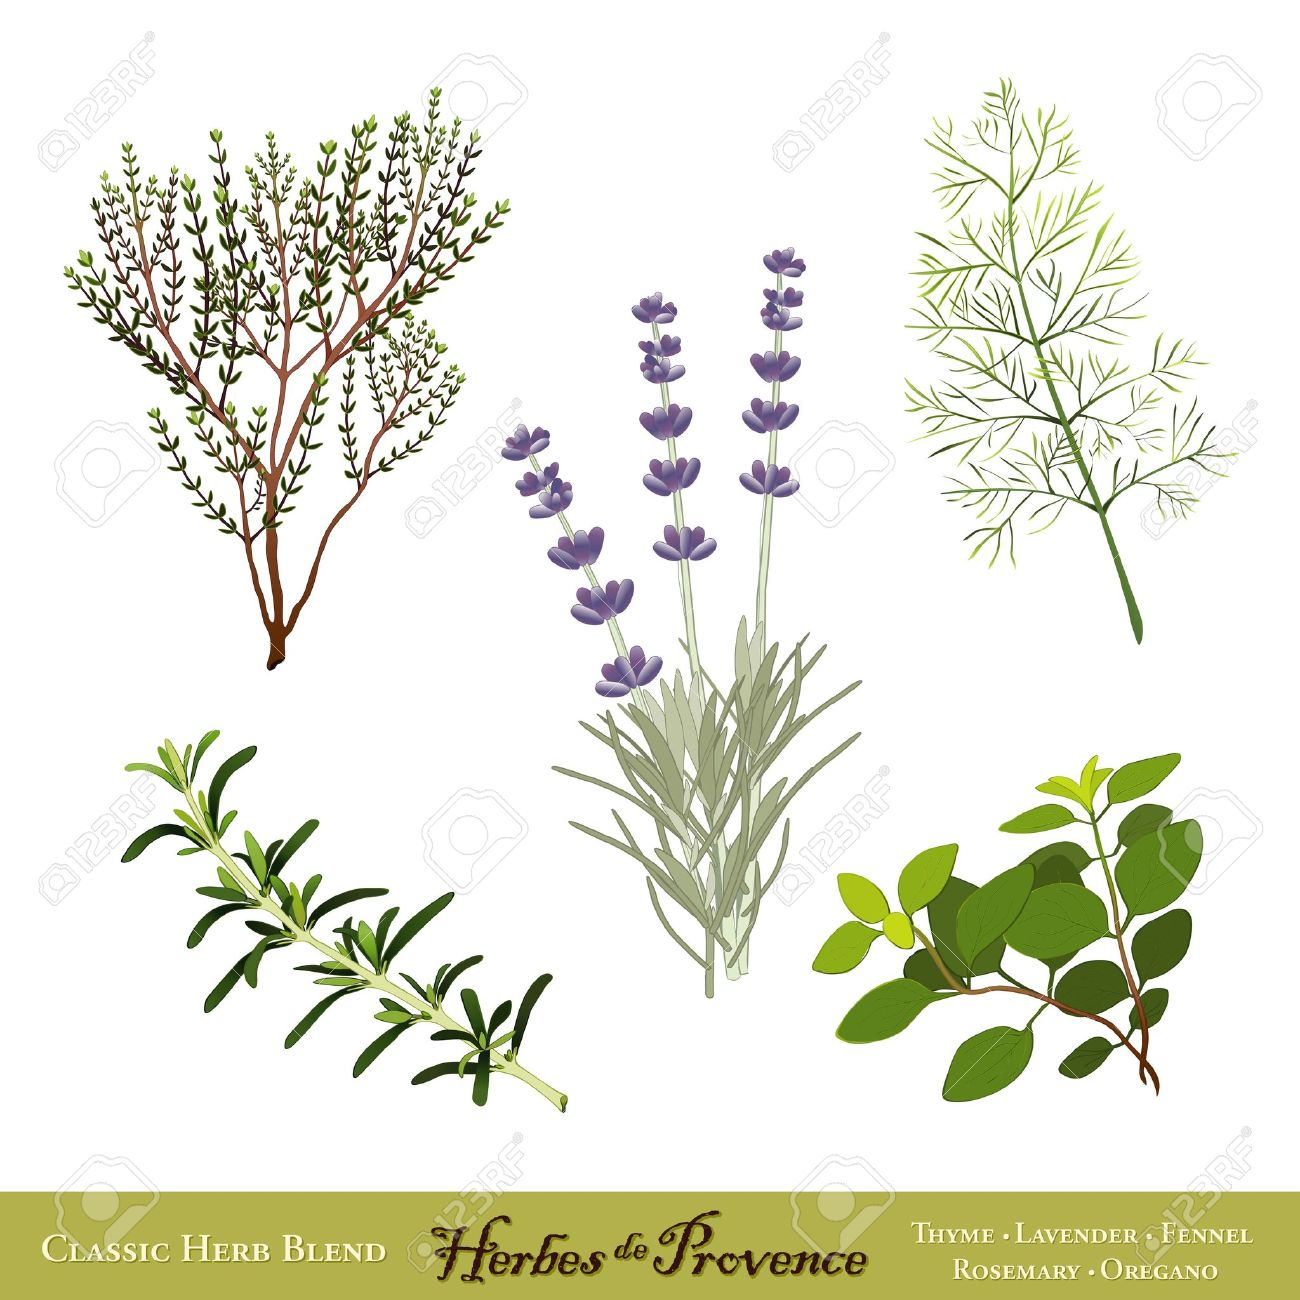 Herbes De Provence, Traditional French Herb Blend Sweet Lavender.